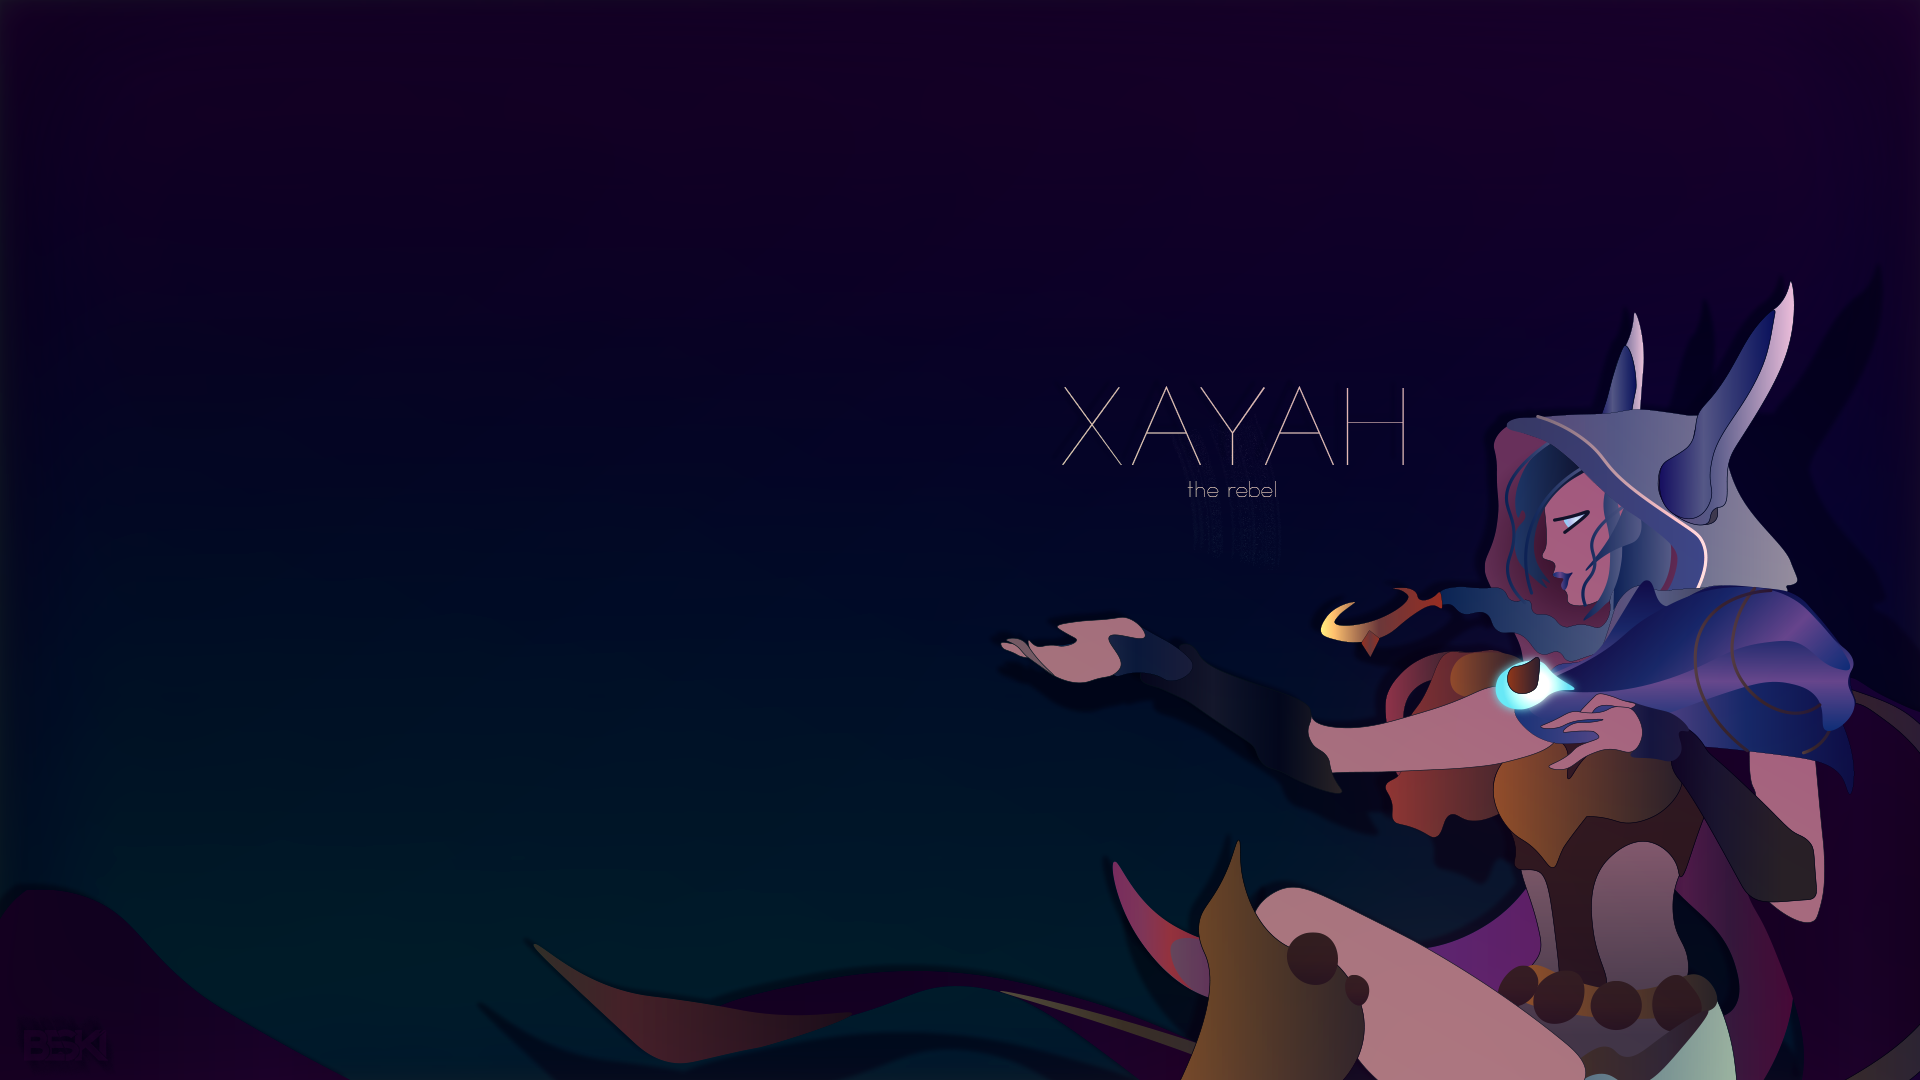 Cosmic Dusk Xayah Minimalist Wallpaper 1 1130978 Png Images Pngio